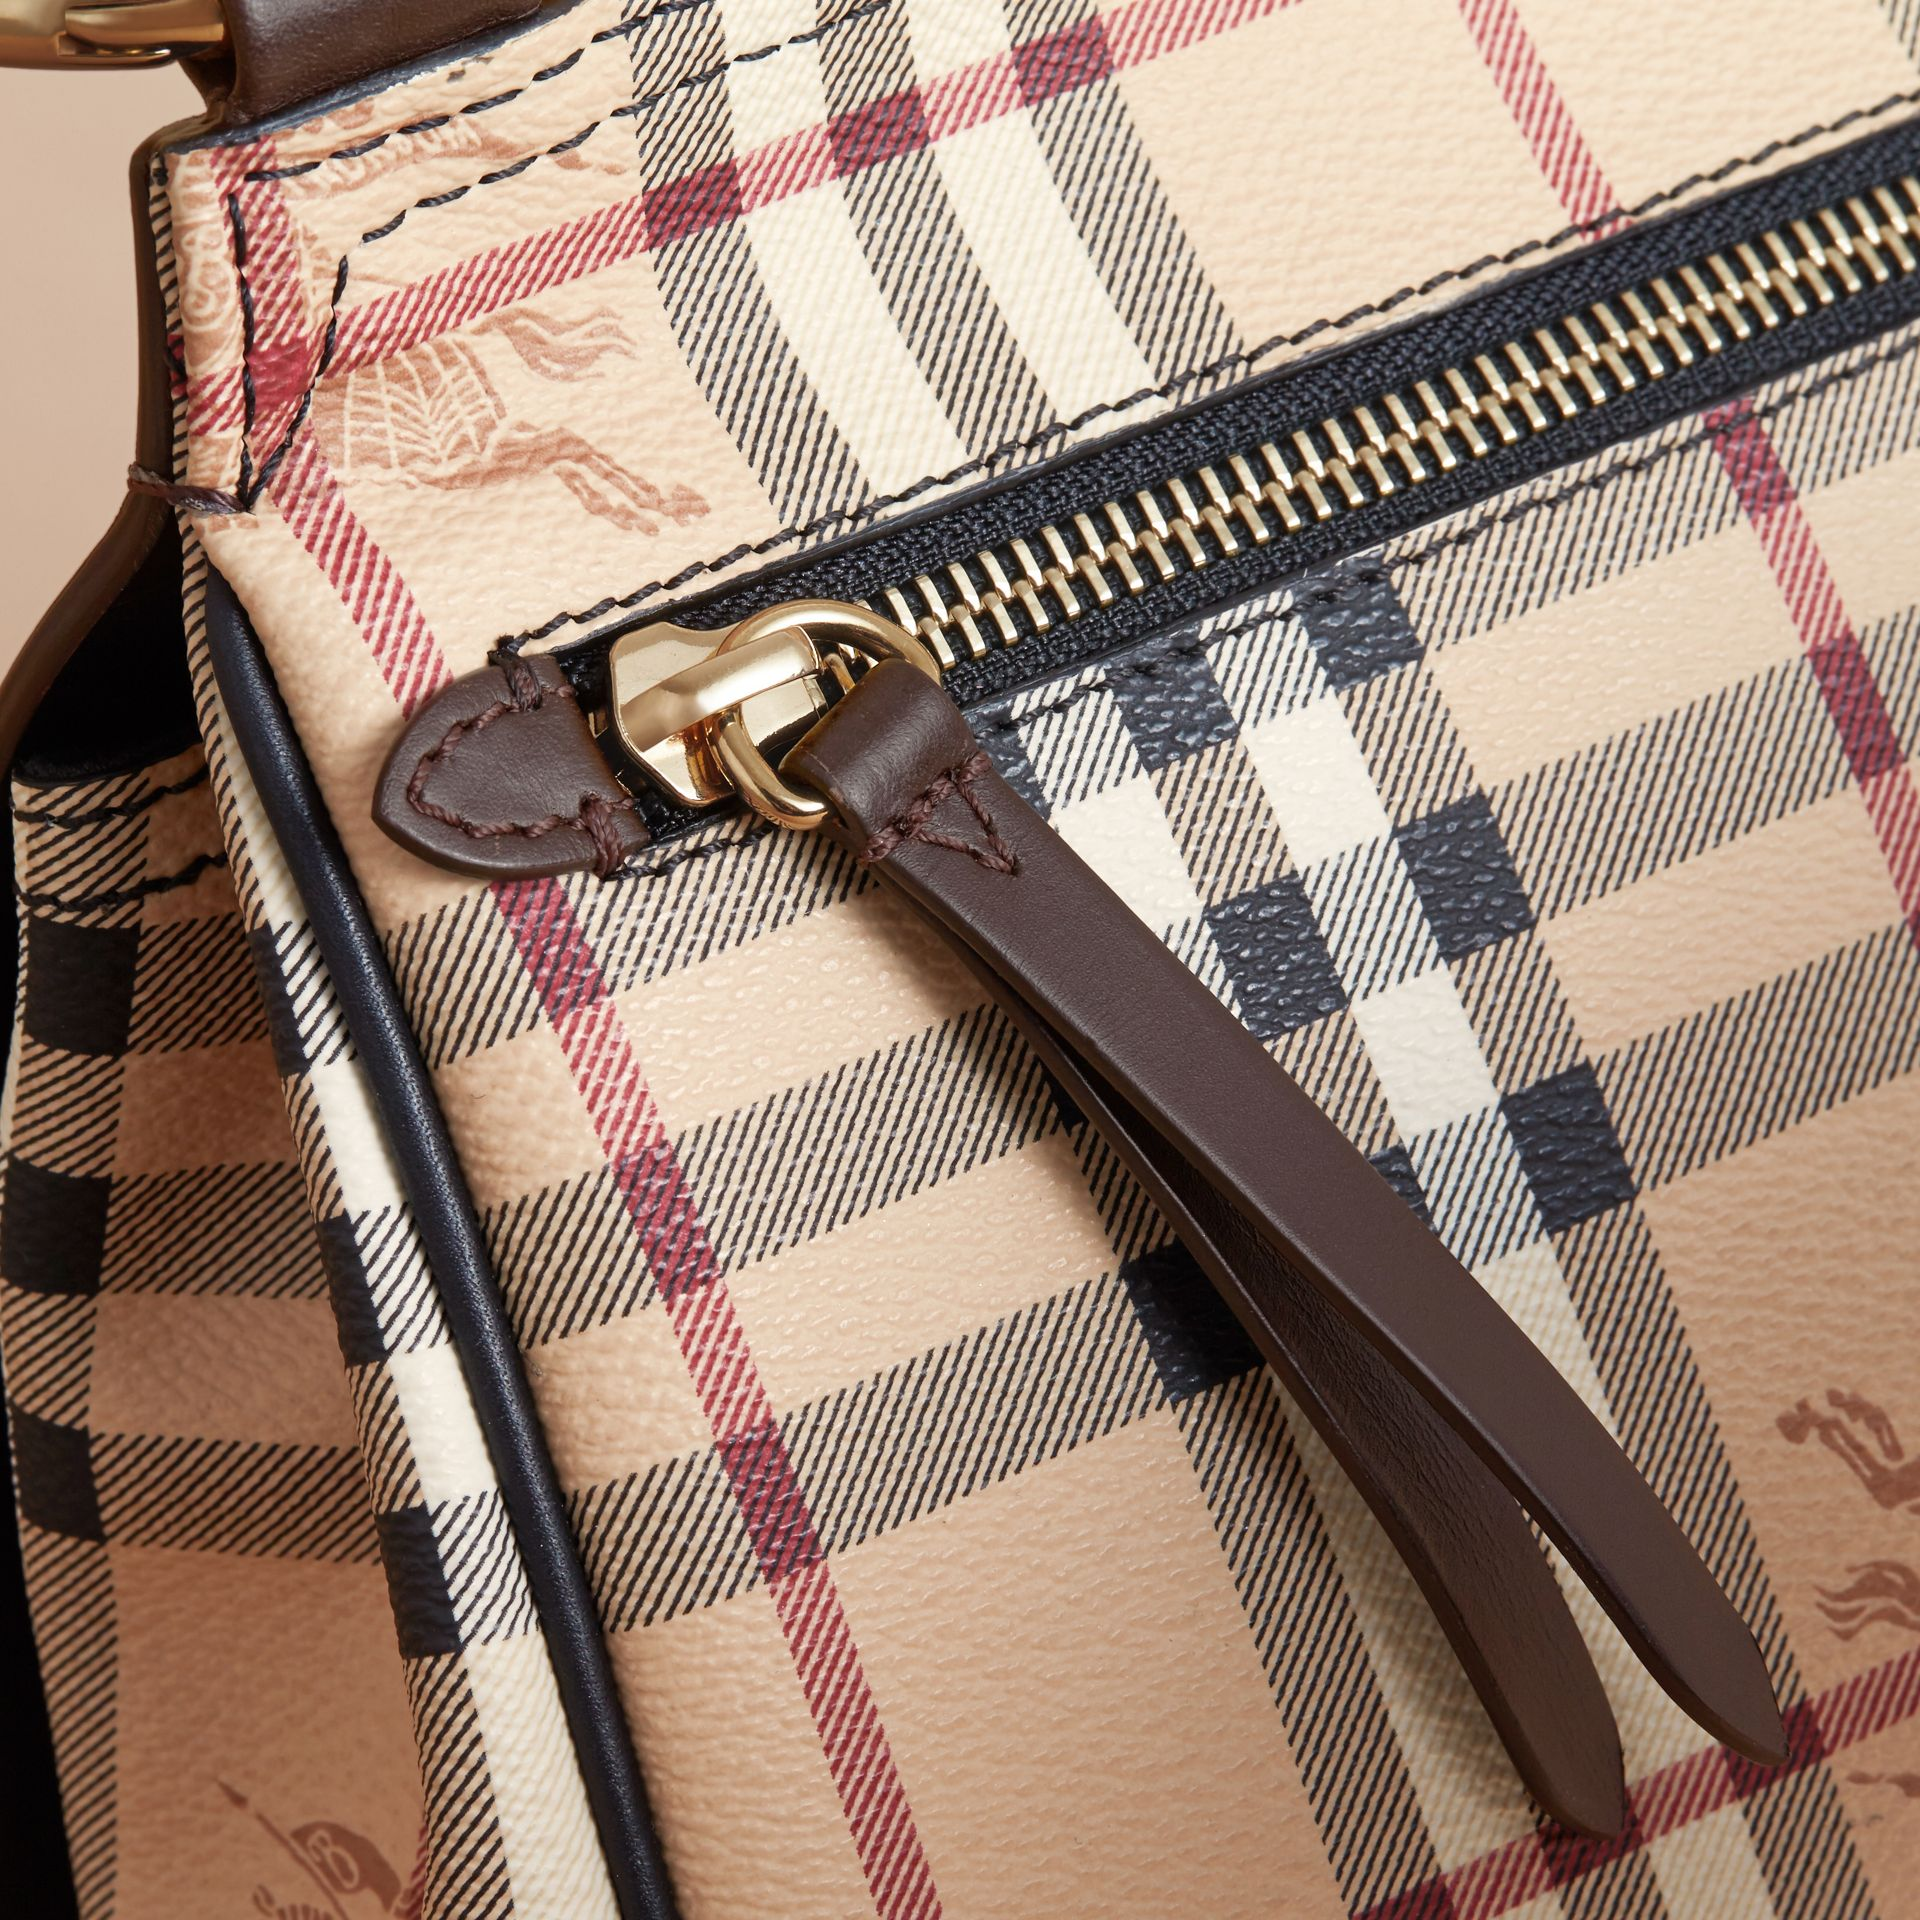 The Bridle Crossbody Bag in Haymarket Check - Women | Burberry Australia - gallery image 6